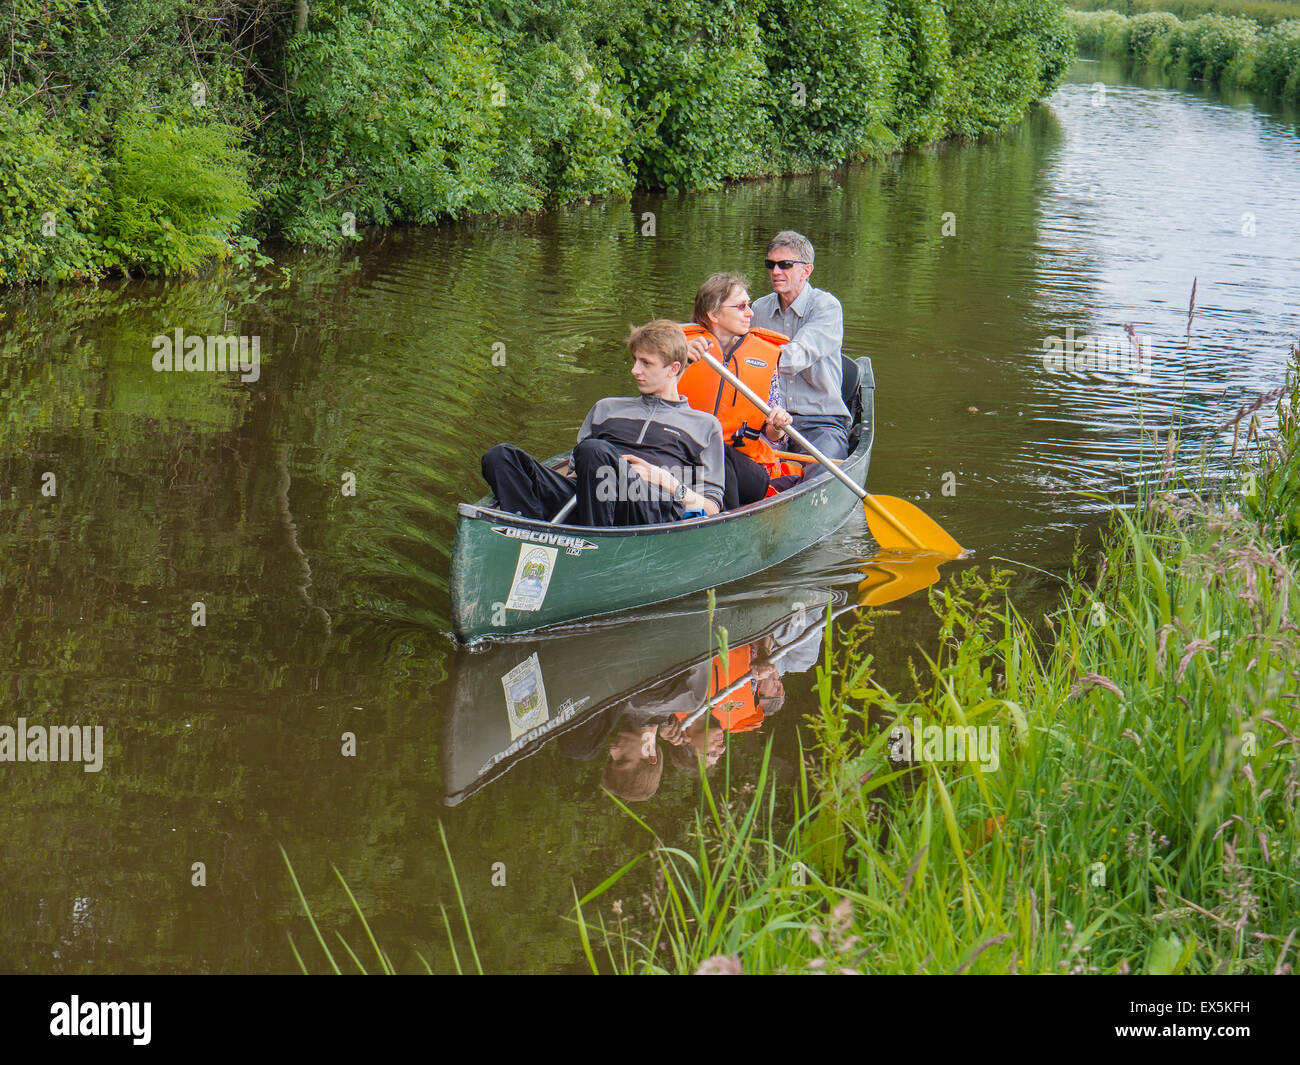 A family of three enjoy a canoe trip on the Monmouthshire and Brecon Canal, (Mon & Brec), near Brecon, Powys, - Stock Image